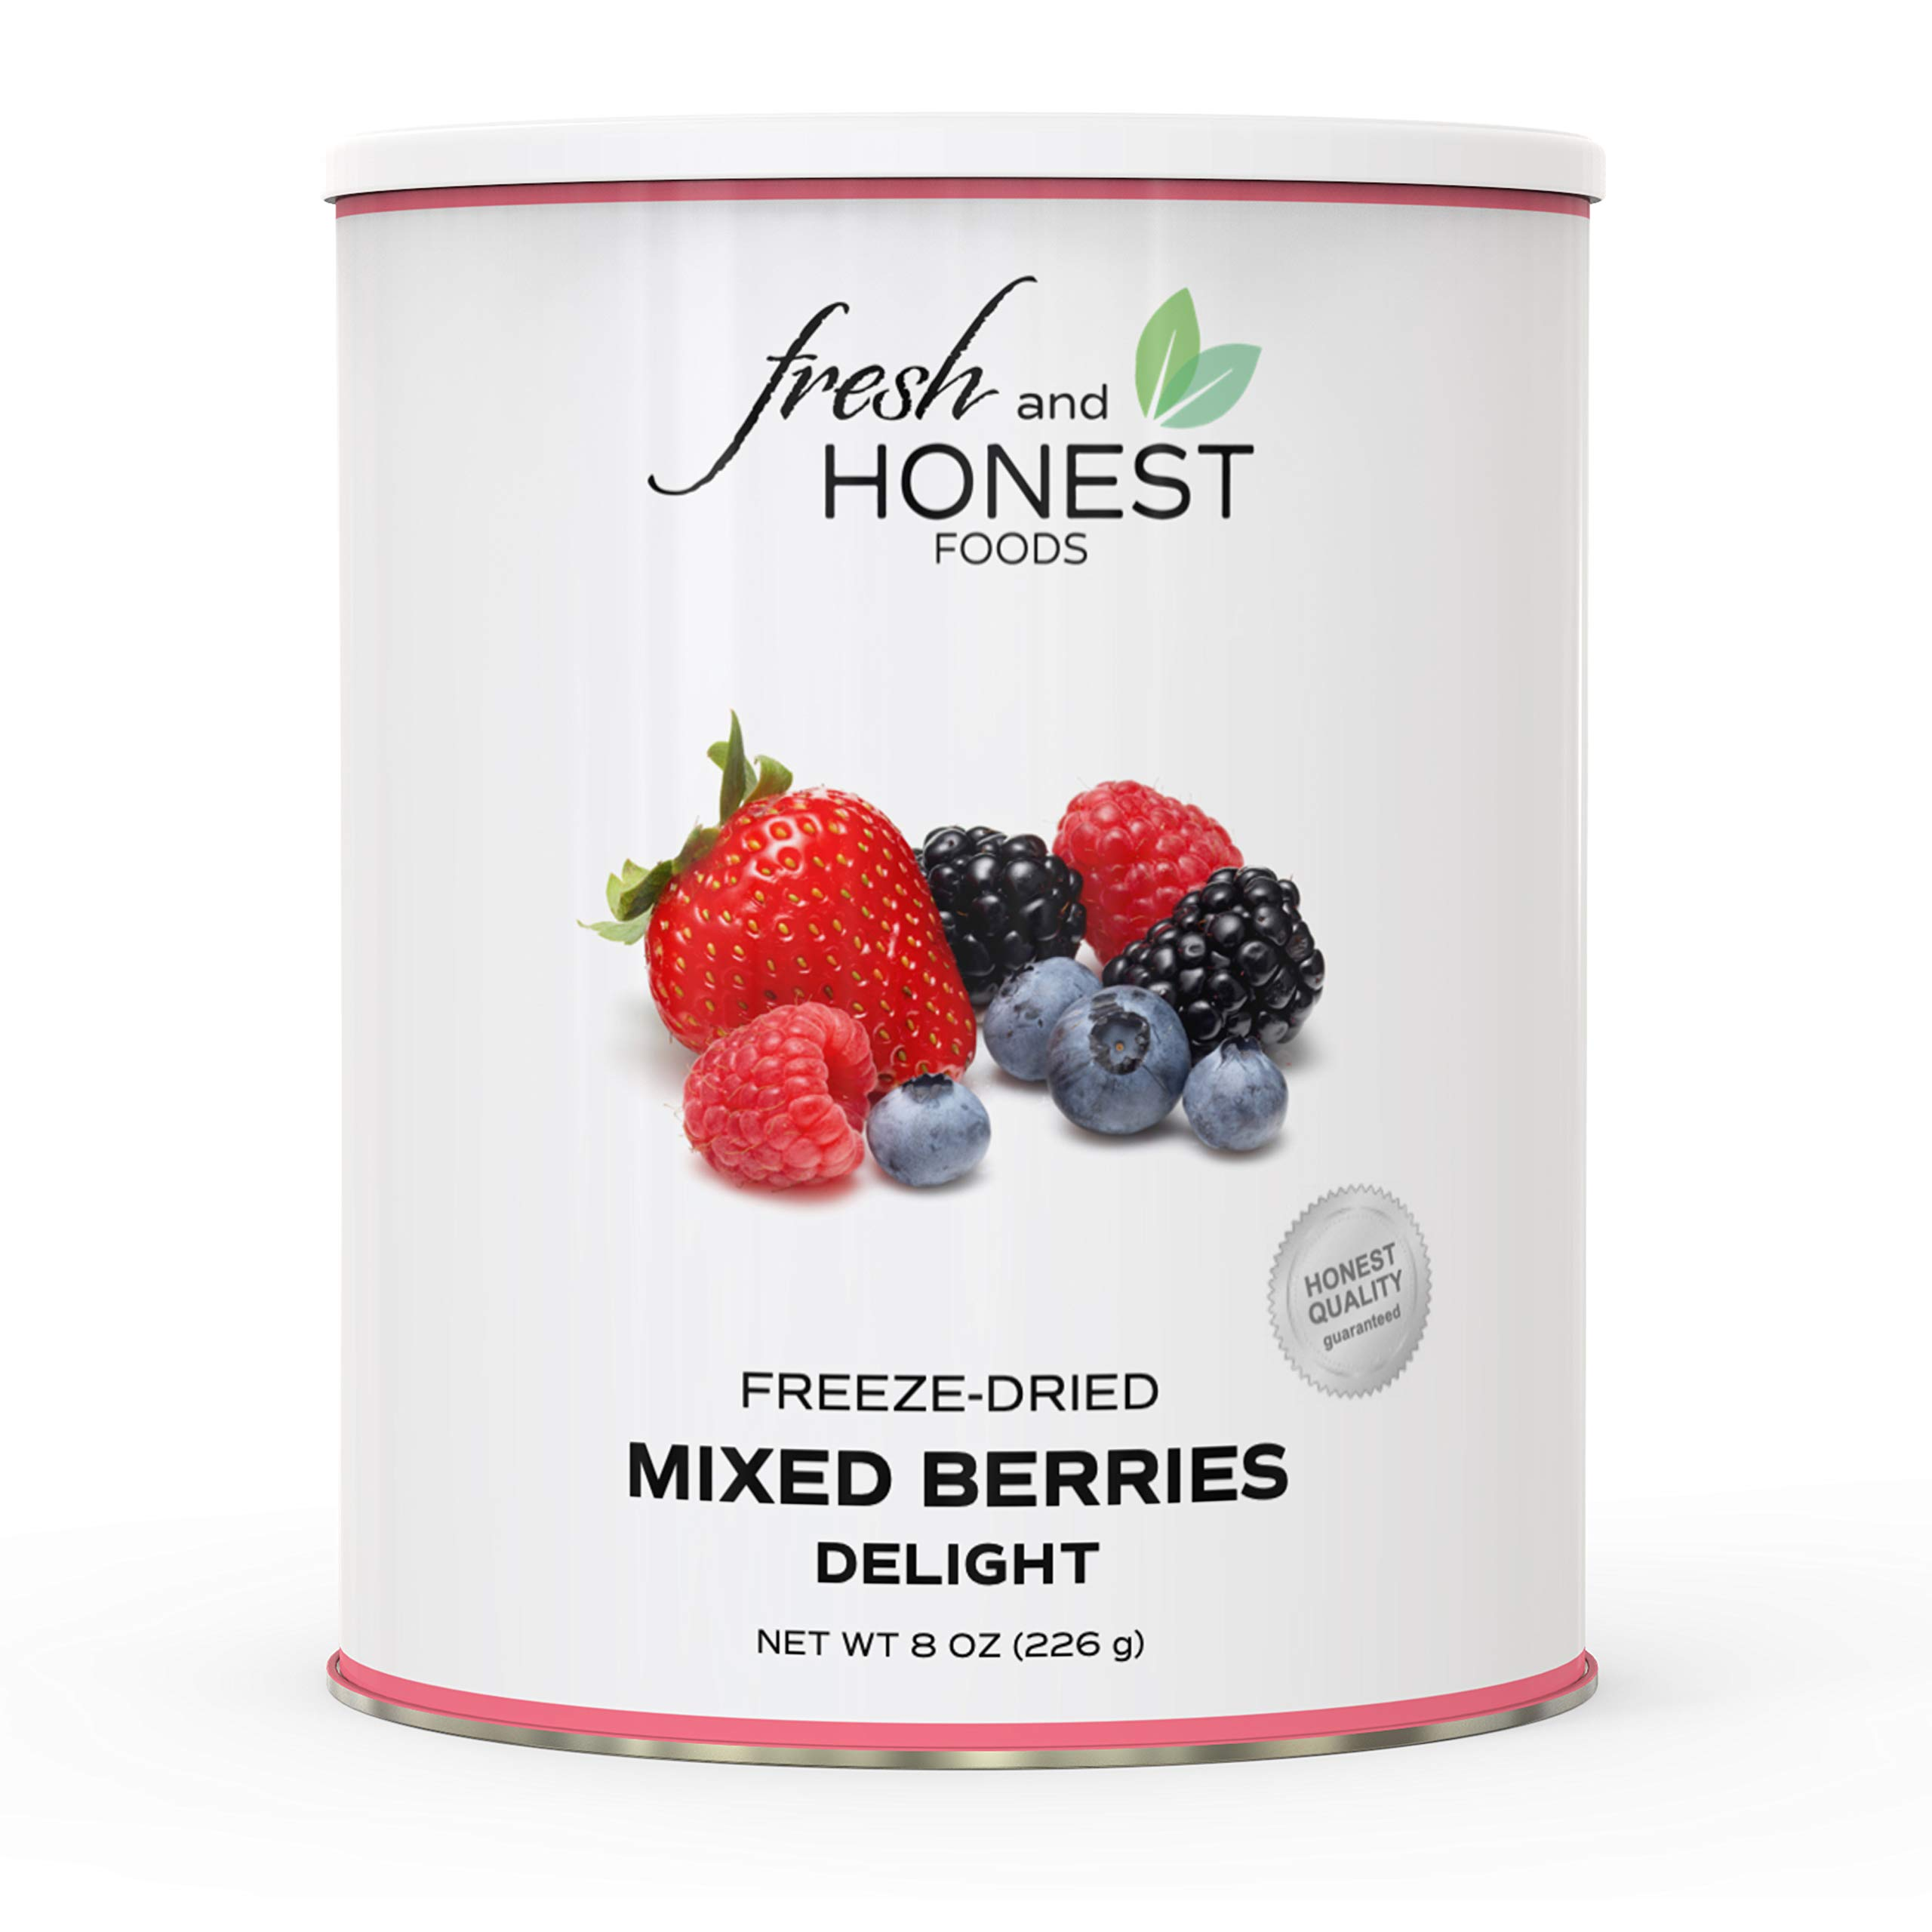 Fresh and Honest Foods 100% All Natural Freeze Dried Mixed Berries Delight 7.9 OZ #10 Can